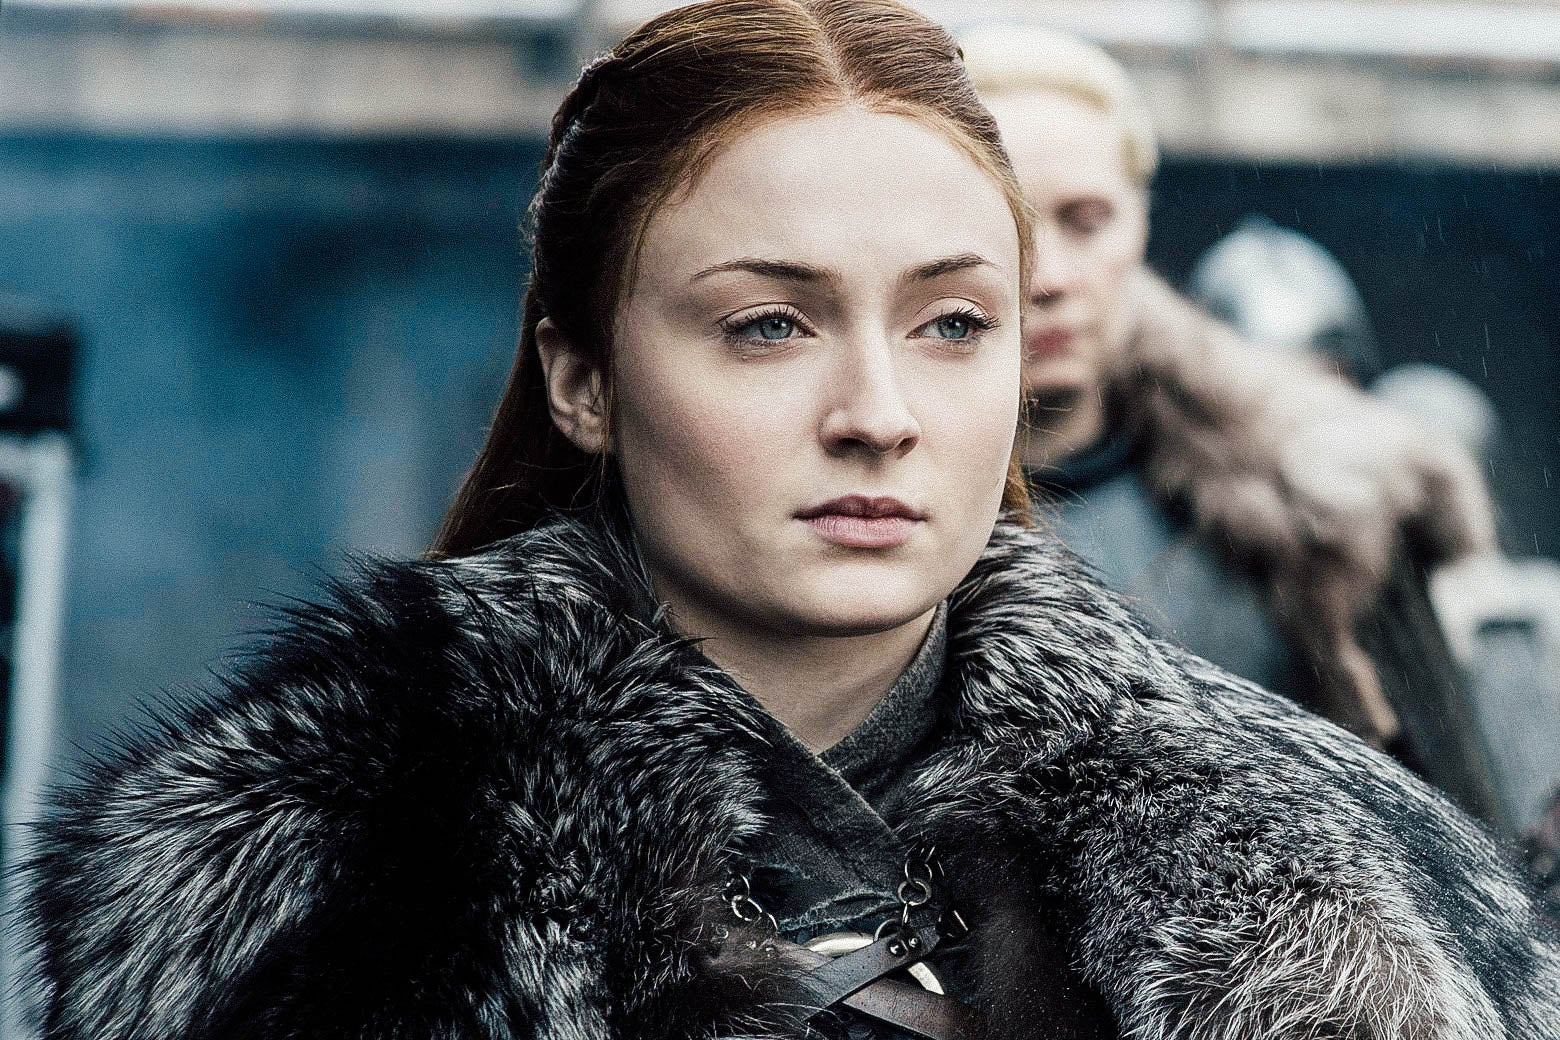 Sophie Turner as Sansa Stark stands while wearing a fur coat in this still from Game of Thrones.